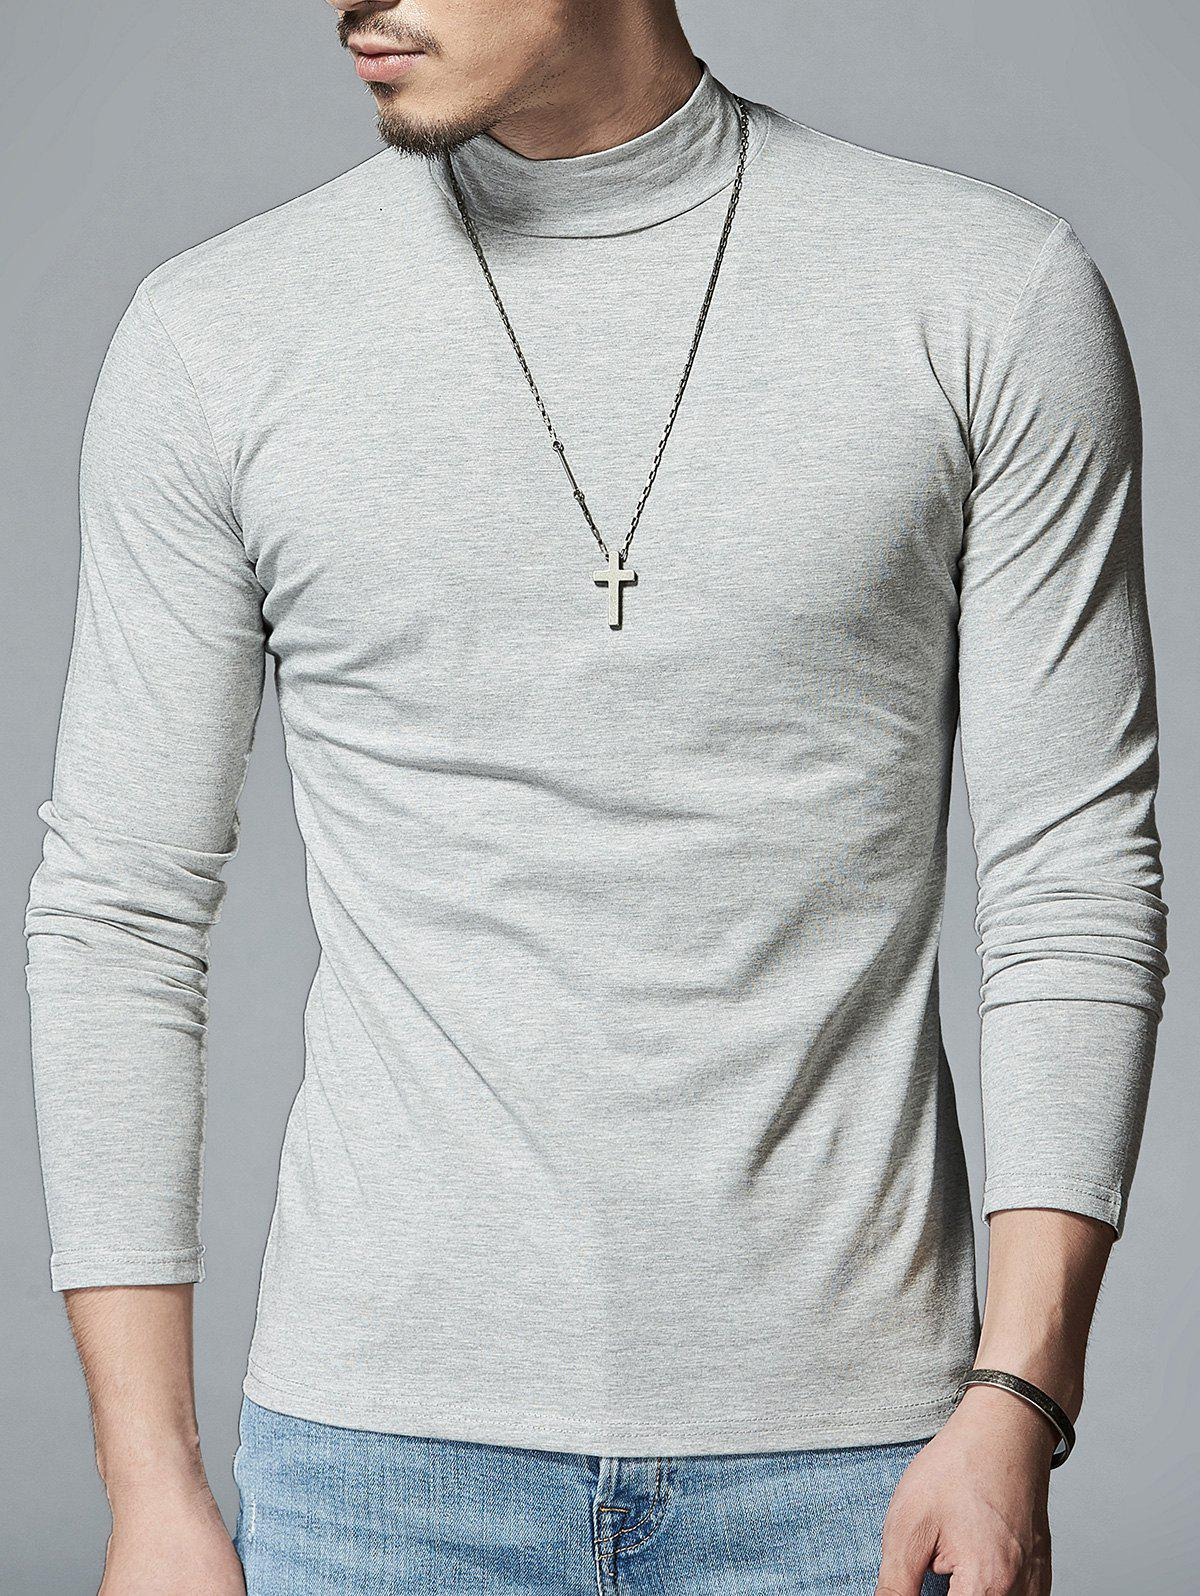 Stretch Mock Neck Long Sleeve T-shirt - LIGHT GRAY L